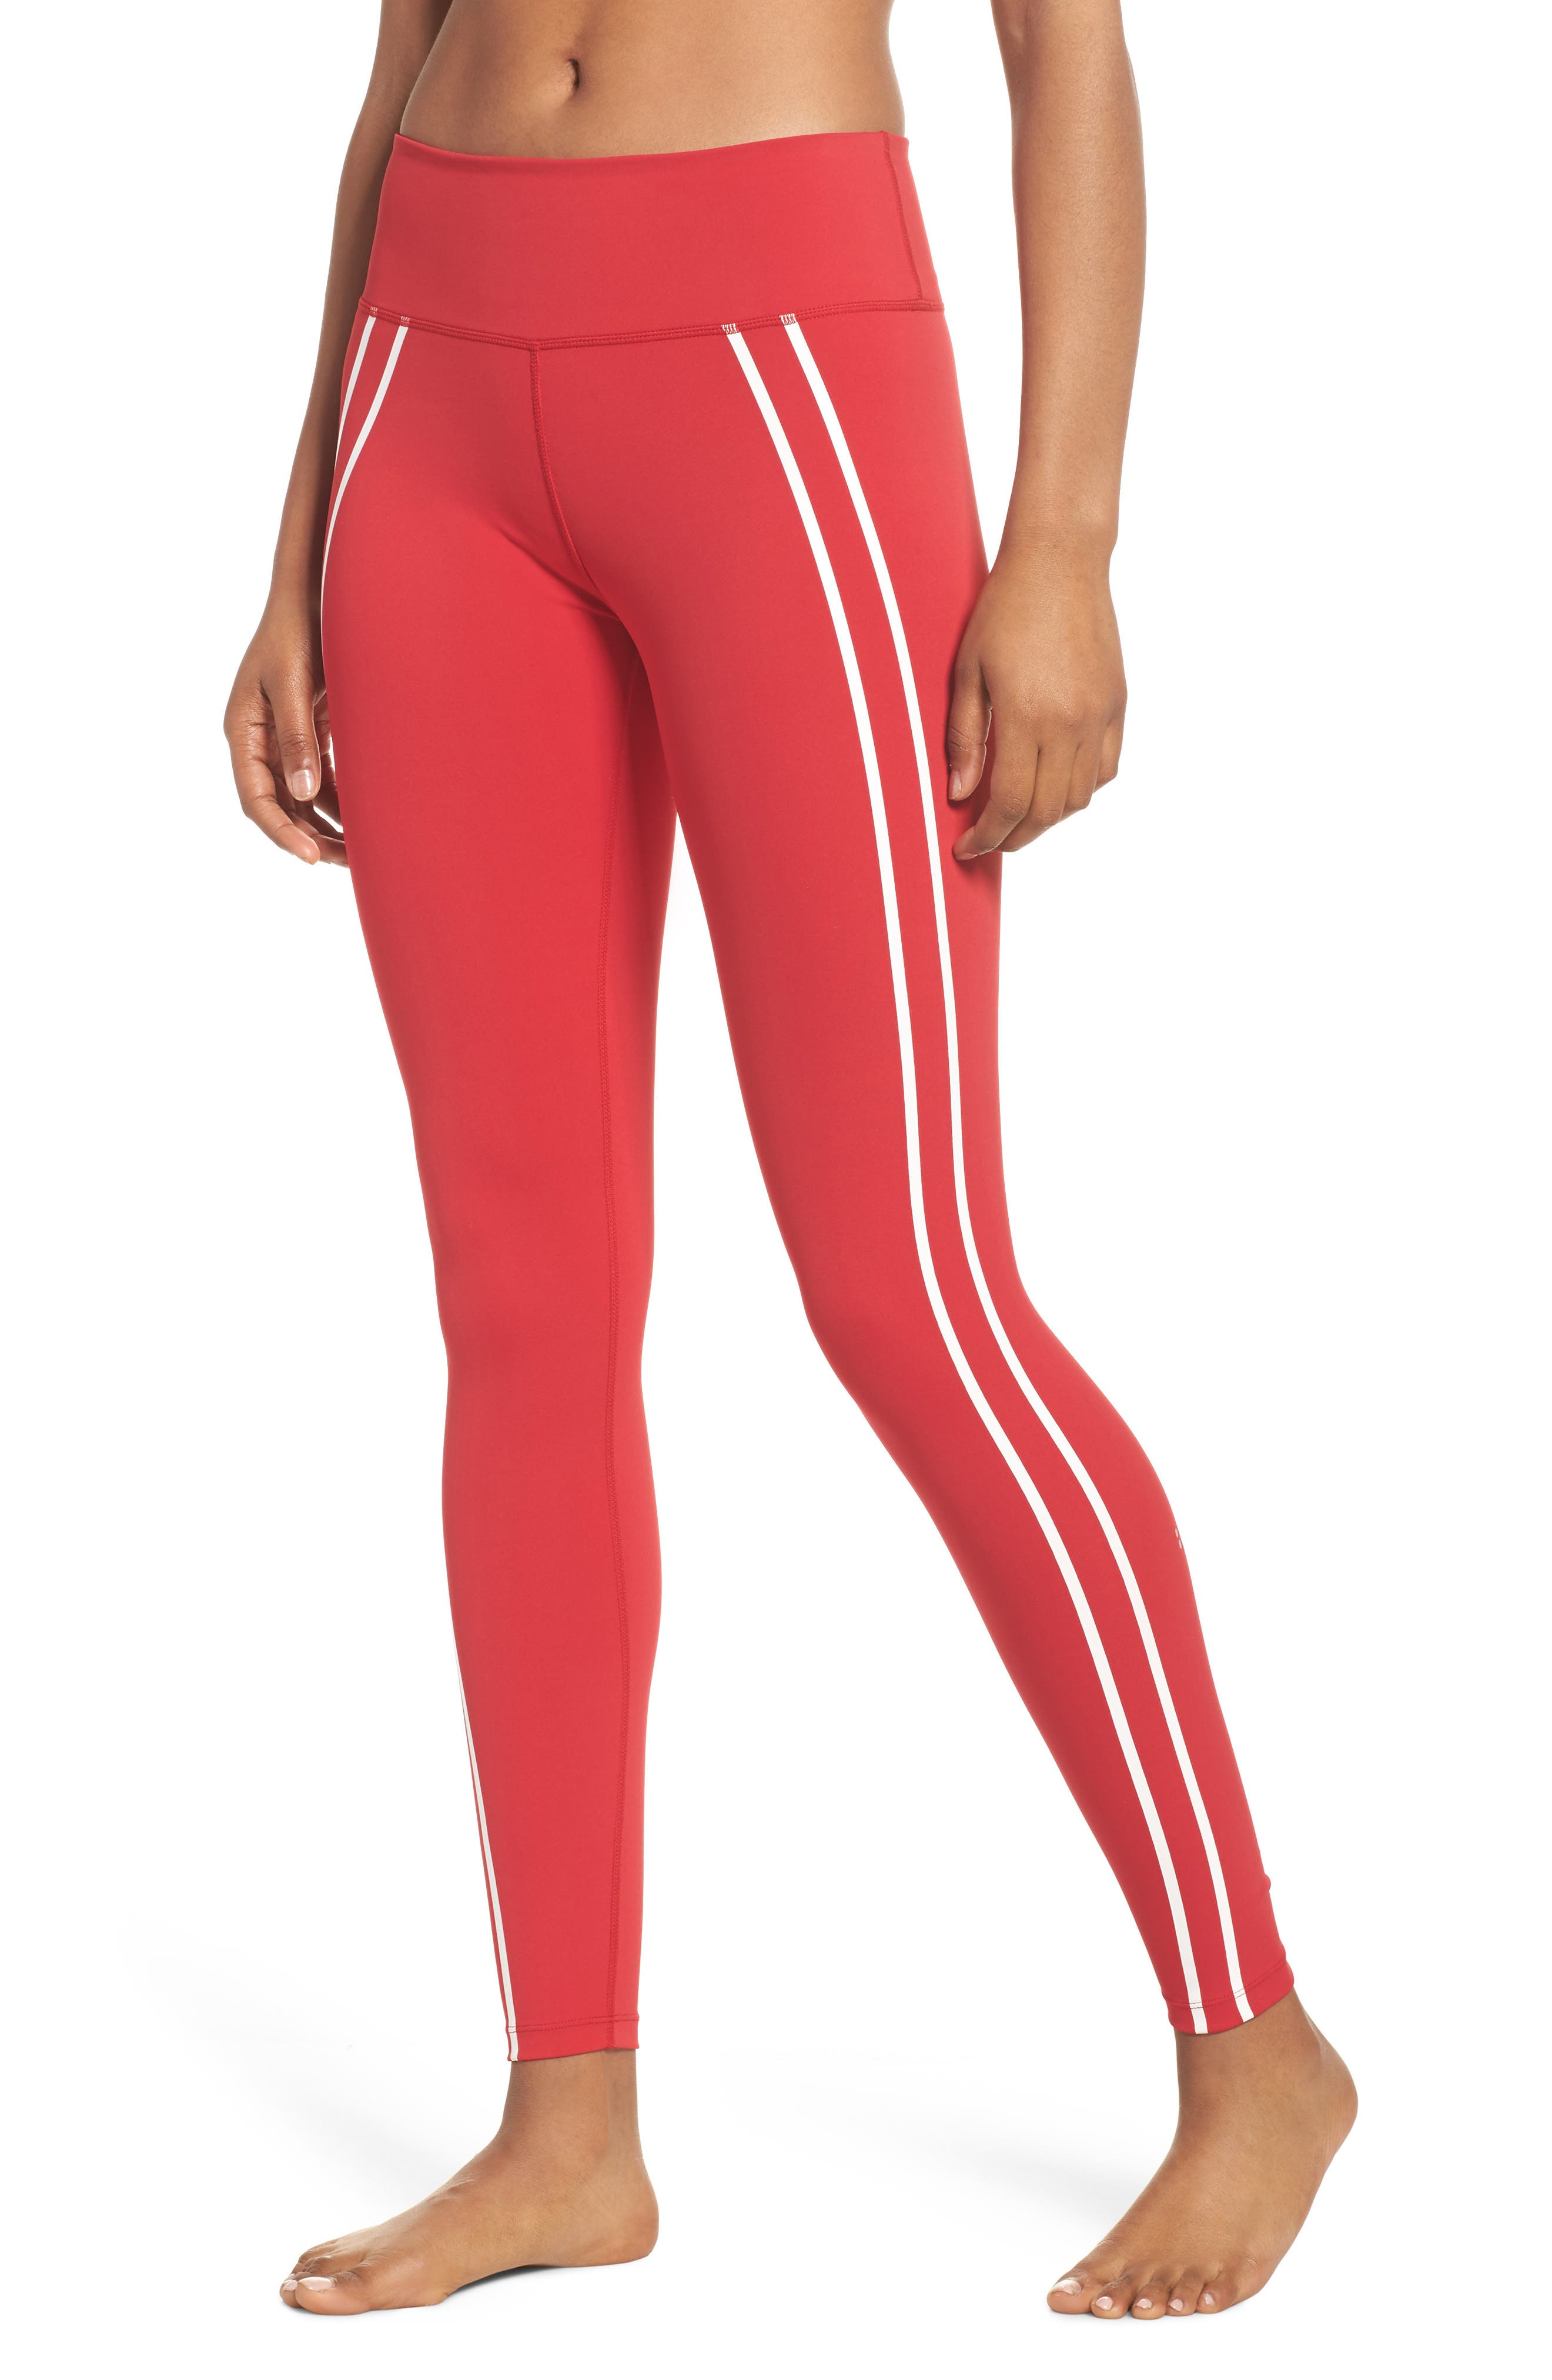 Distance Tights,                             Main thumbnail 1, color,                             Havana Red/ Off White